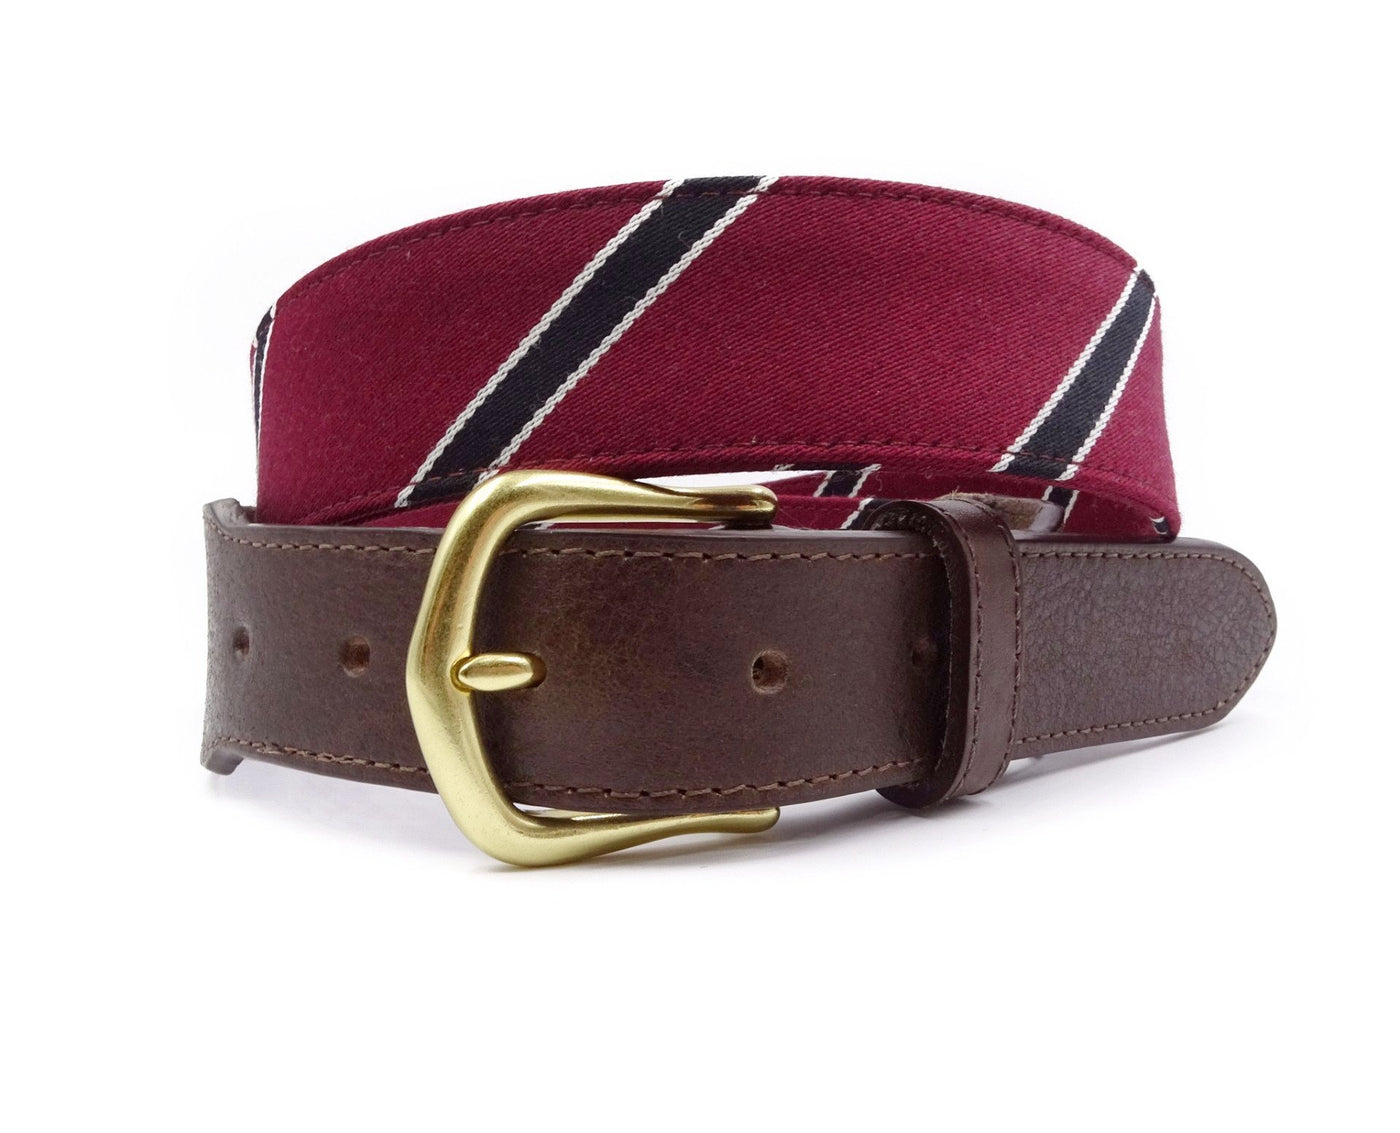 Quaker Belt - FH Wadsworth